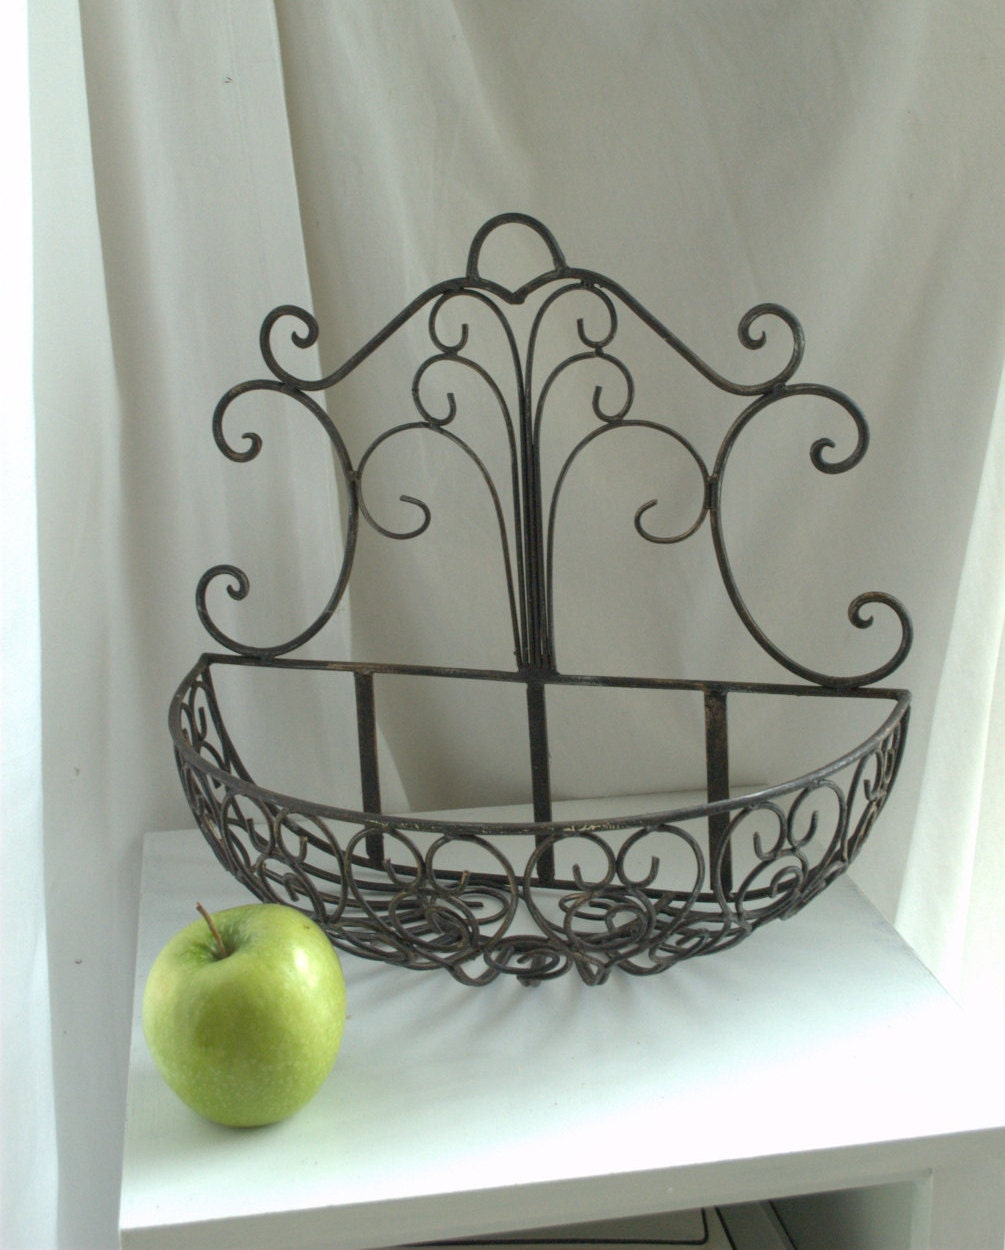 Rustic Wrought Iron Wall Mounted Planter Basket / Modern on Iron Wall Vases id=35688